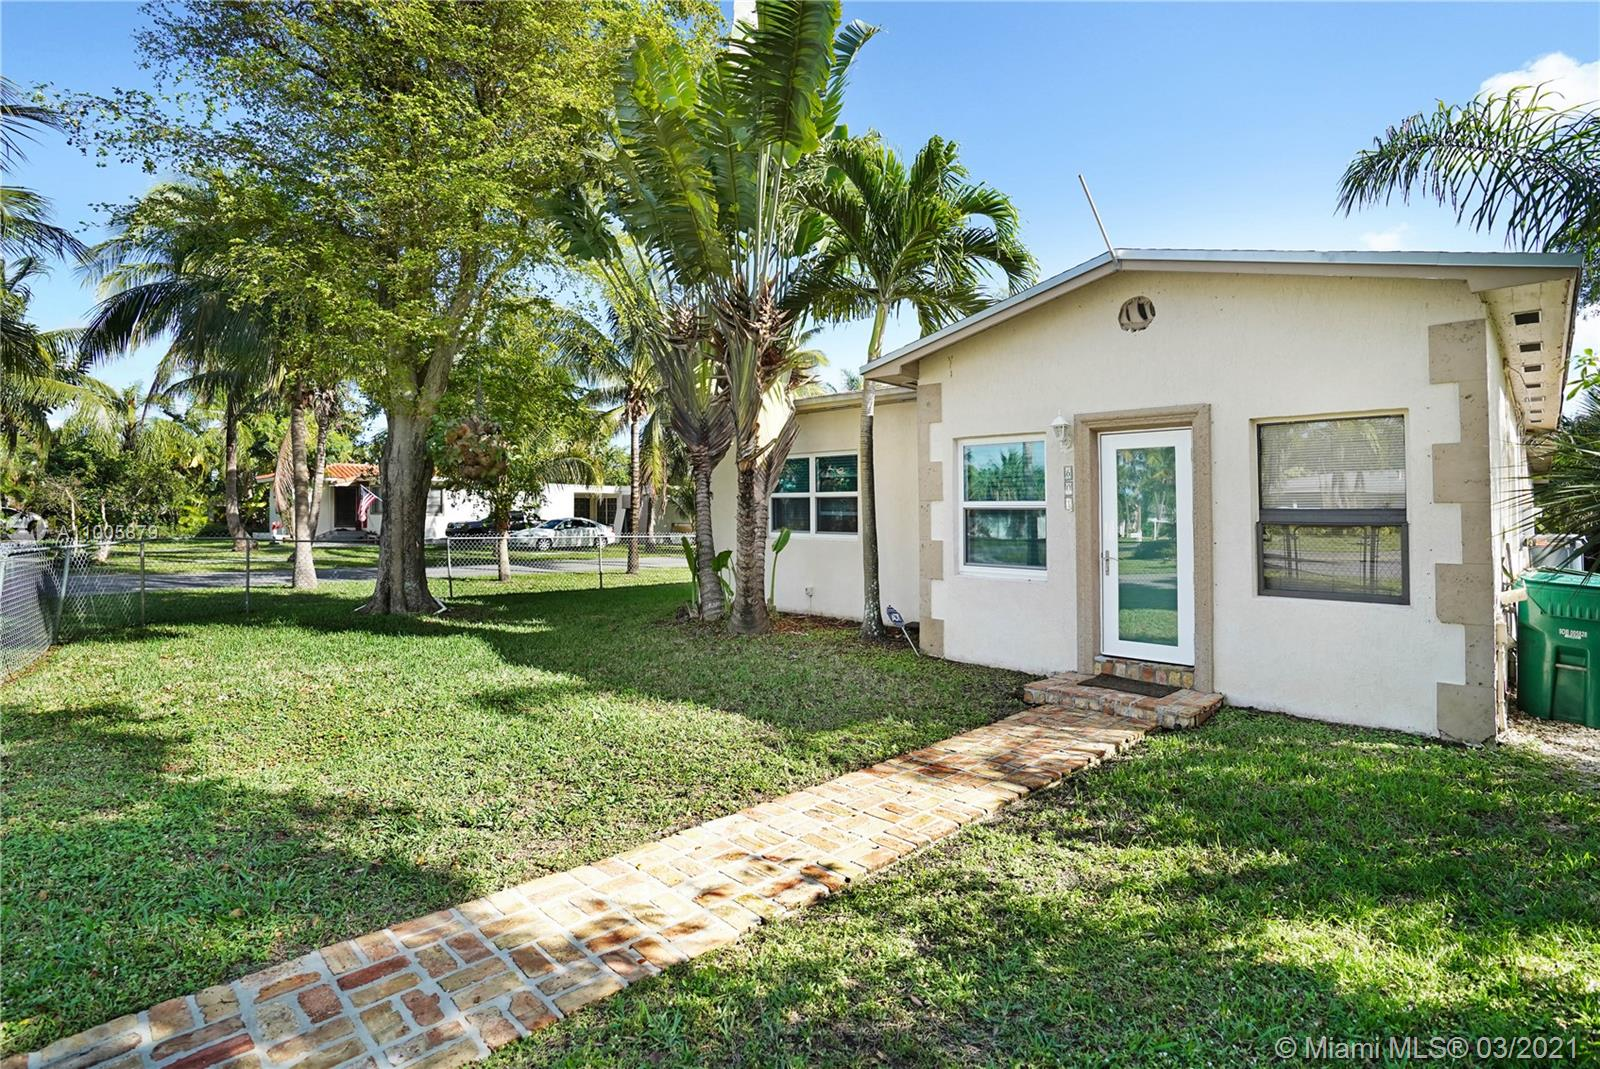 """Come see this beautiful MOVE IN READY Home in the quite, safe and enclosed Neighborhood of Malelueca Gardens! This home is NO HOA fees yet you still have access to private community boat ramp, tennis courts, basketball court, and playground! Equipped with modern updates, wood floors, updated Kitchen, nice sized rooms and closets and office space too. HUGE CORNER LOT, plenty of Parking space, for cars, boats, trailers etc. INVITE YOUR FRIENDS OVER AGAIN, with the outdoor screened in patio area you can socially distance and be """"outdoors"""" at the same time! THIS WONT LAST LONG!! LOCATION, LOCATION, LOCATION... 2 Mins from the highway, 5 Mins from FLL airport and 10 Mins from the beach.... oh and did I mention you have Impact windows!!  Call Listing agent for showings. Must have Pre-approval."""